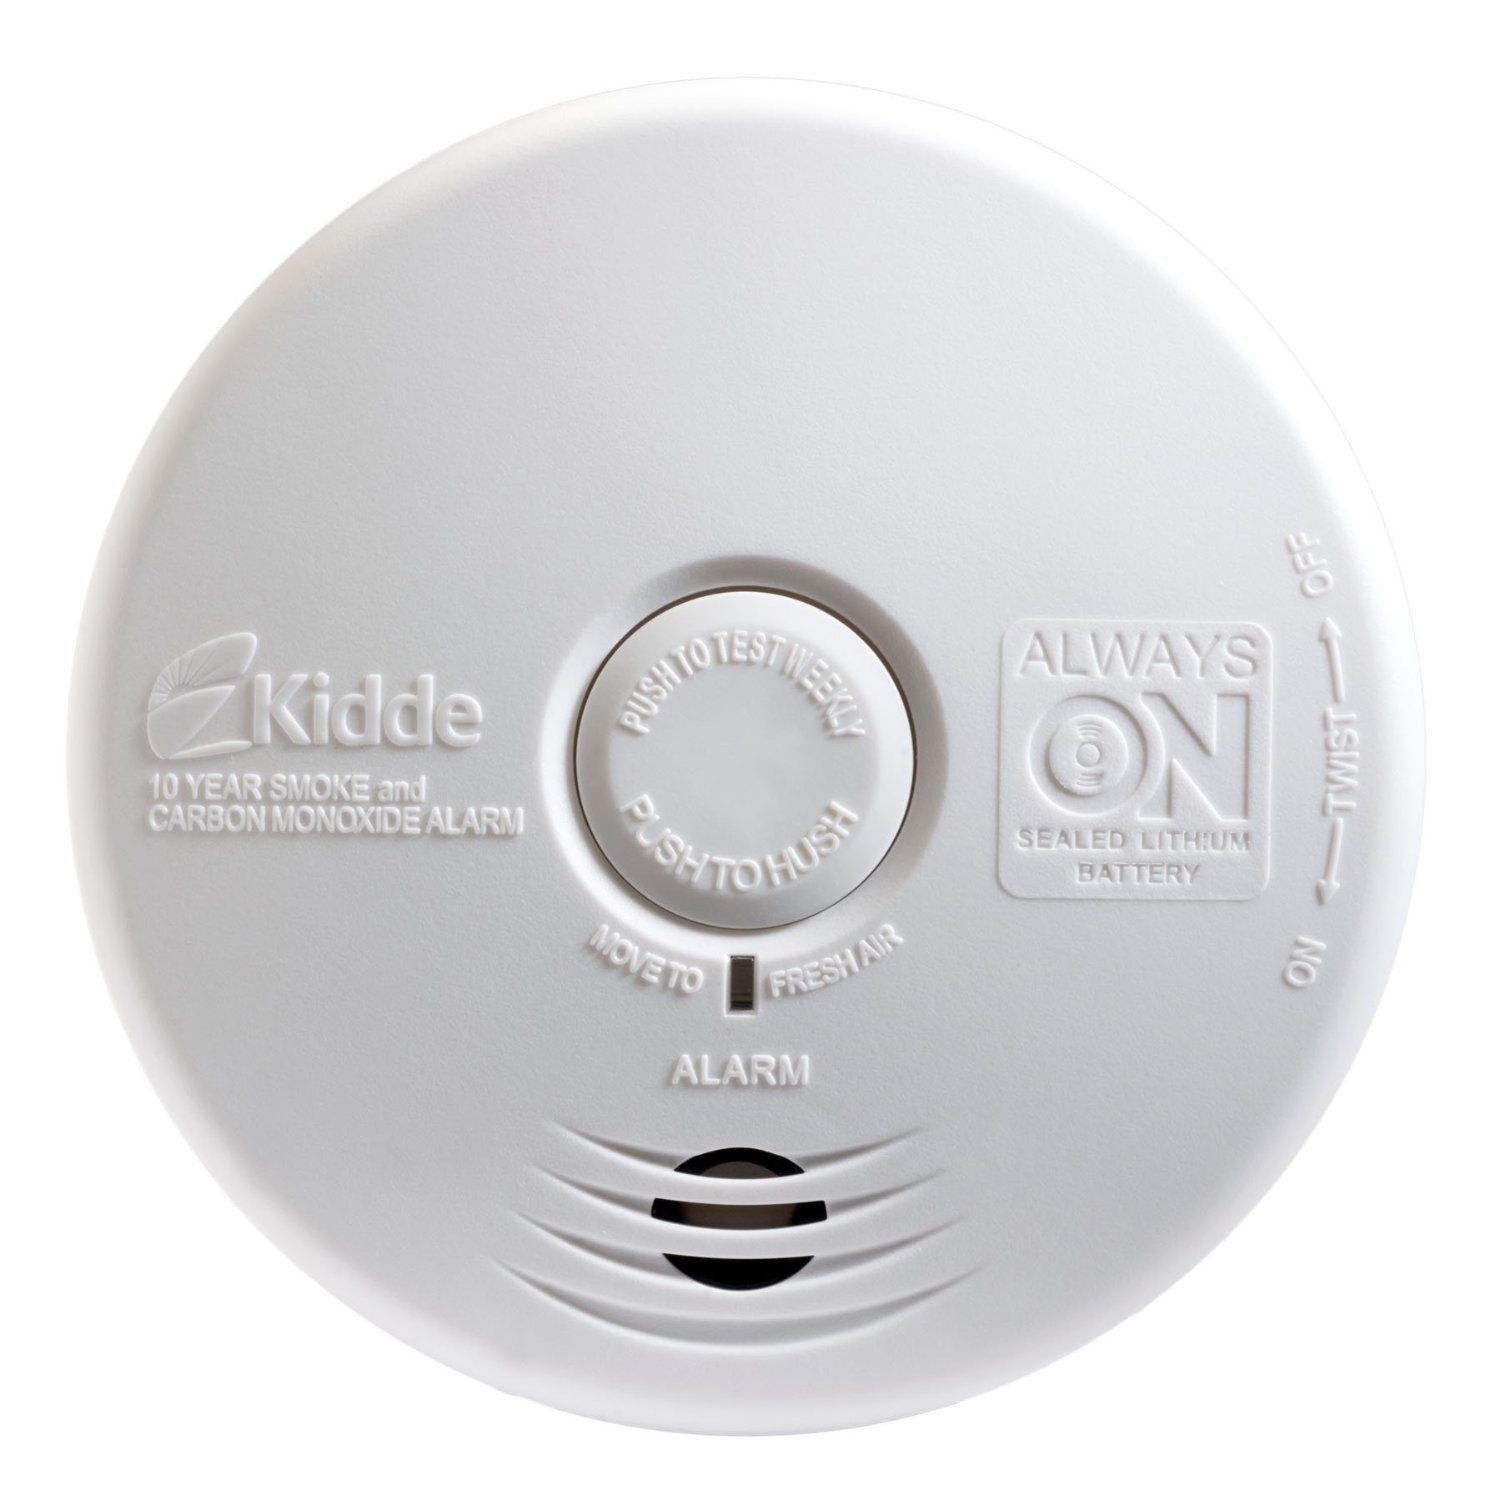 Kidde P3010K-CO Worry-Free Kitchen Smoke and Carbon Monoxide Alarm with 10 Year Sealed Battery (4 Pack)